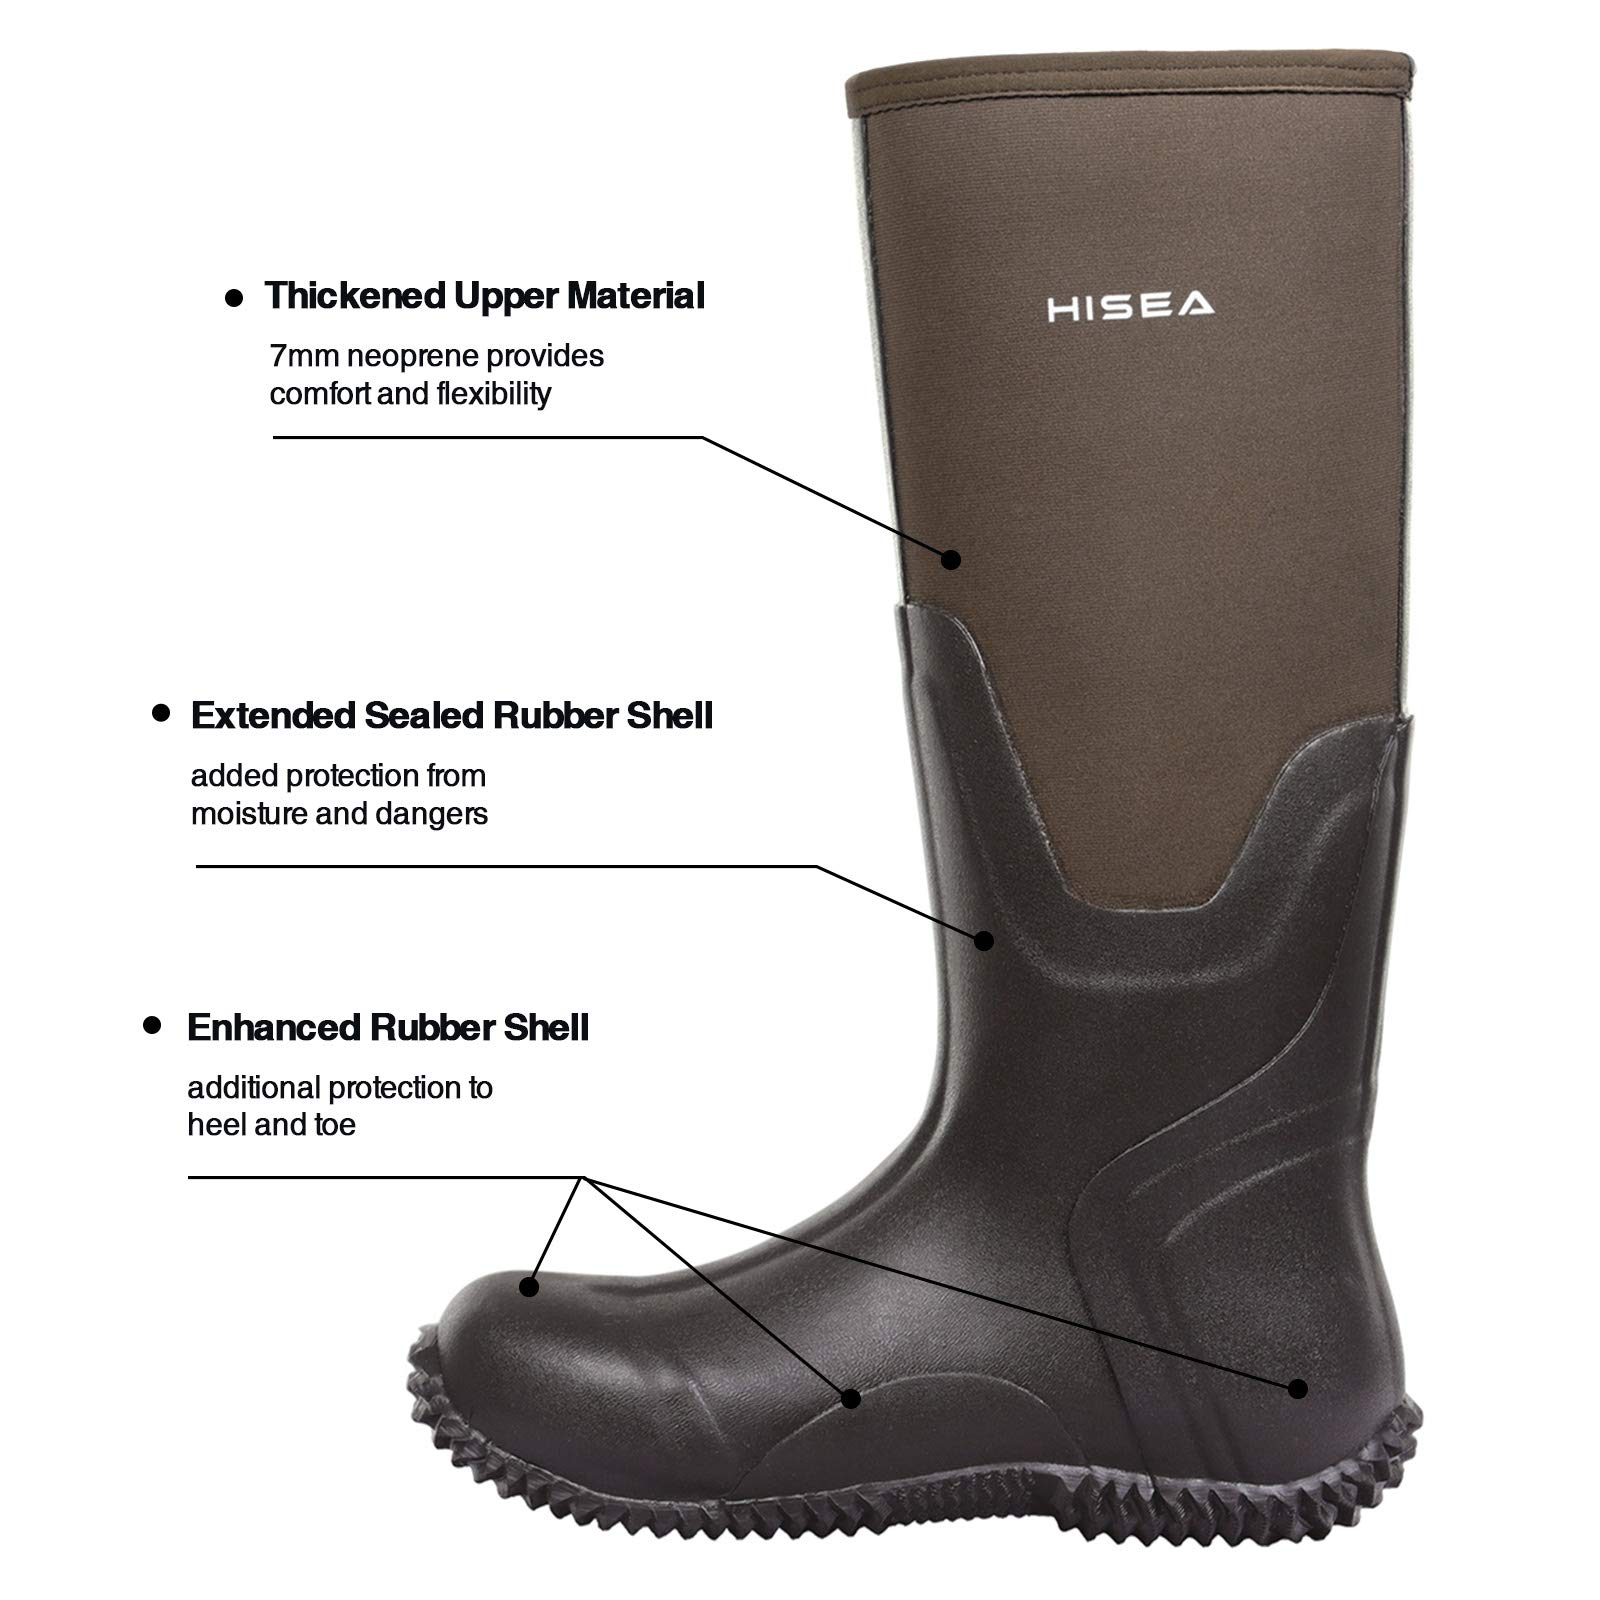 Hisea Mens Insulated Rubber Neoprene Boots Waterproof Durable Insulated Outdoor Winter Snow Rain Boots Hunting Arctic Boot Brown Size 6 by Hisea (Image #3)